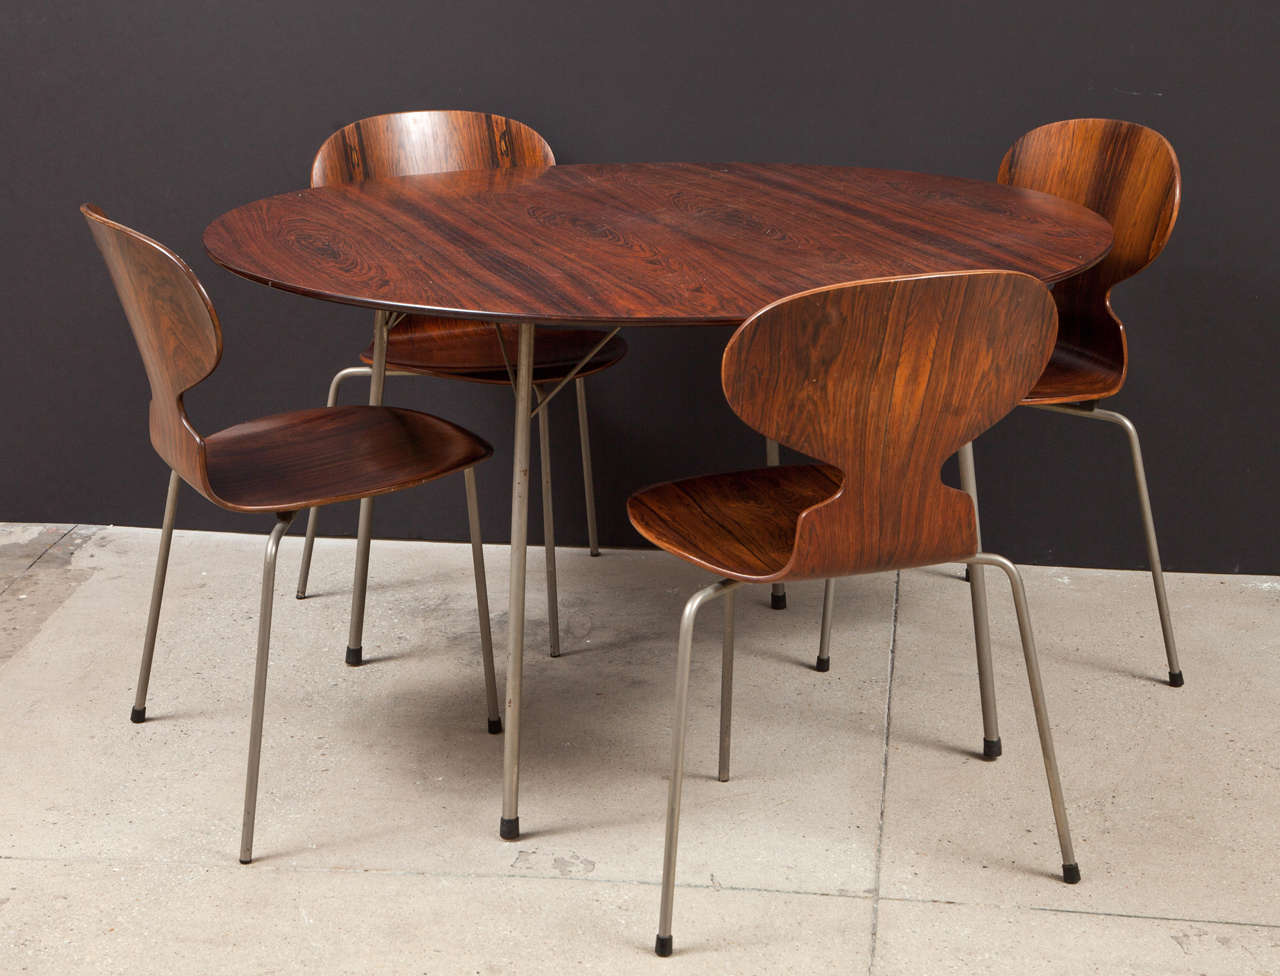 A Matching Set Of Four Dining Chairs And Round Table In Rosewood With Steel Lets